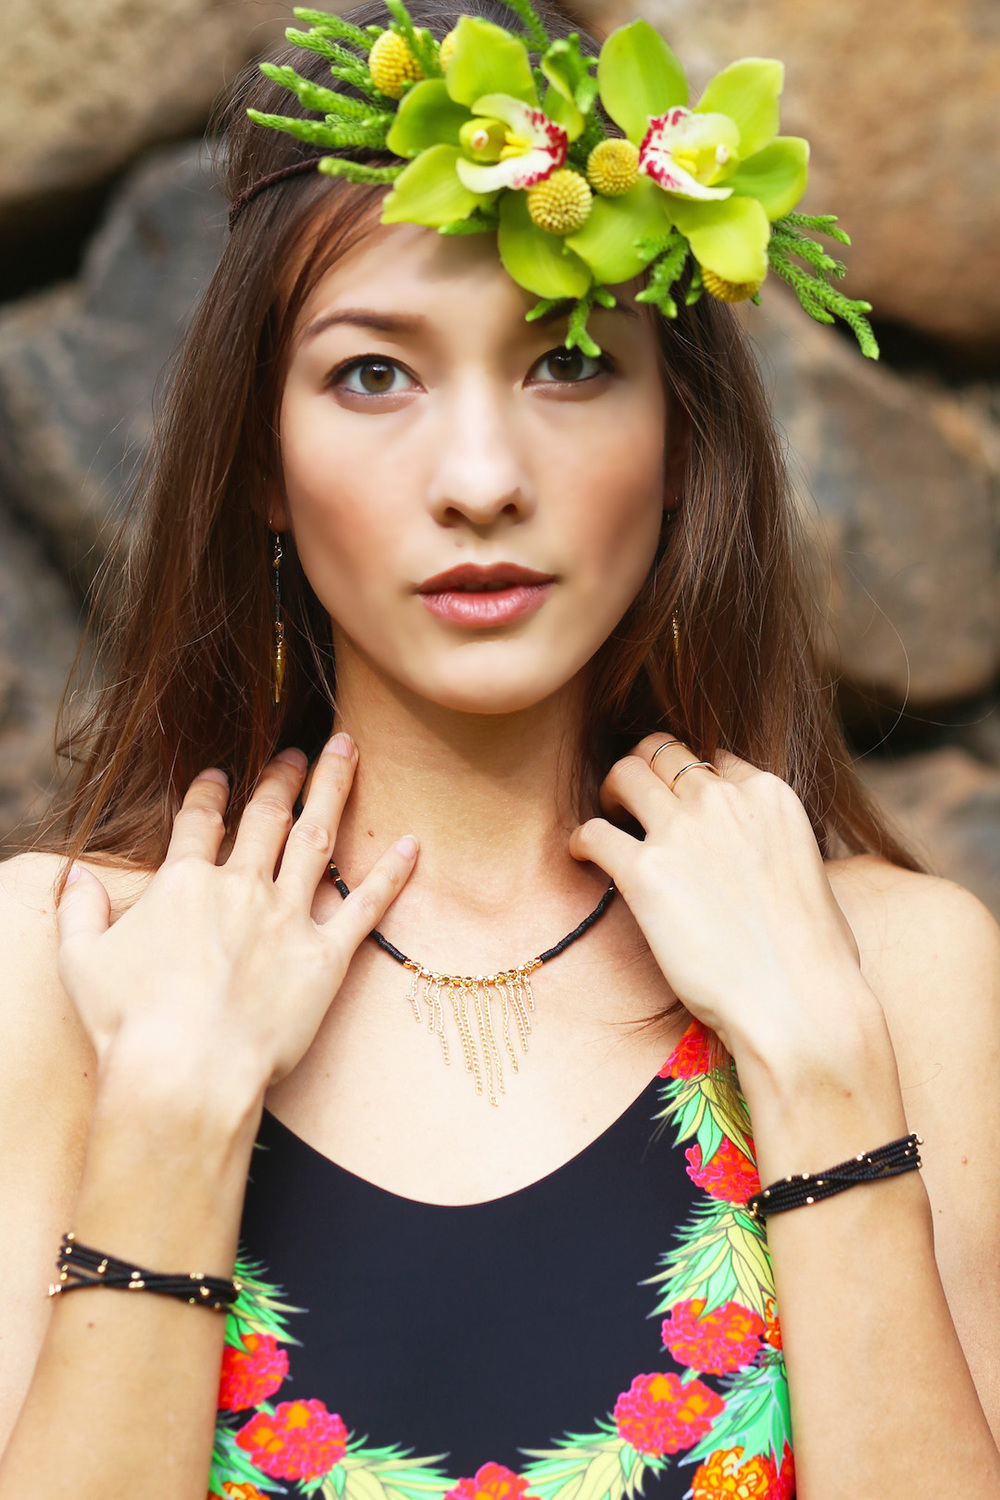 paiko floral crown workshop